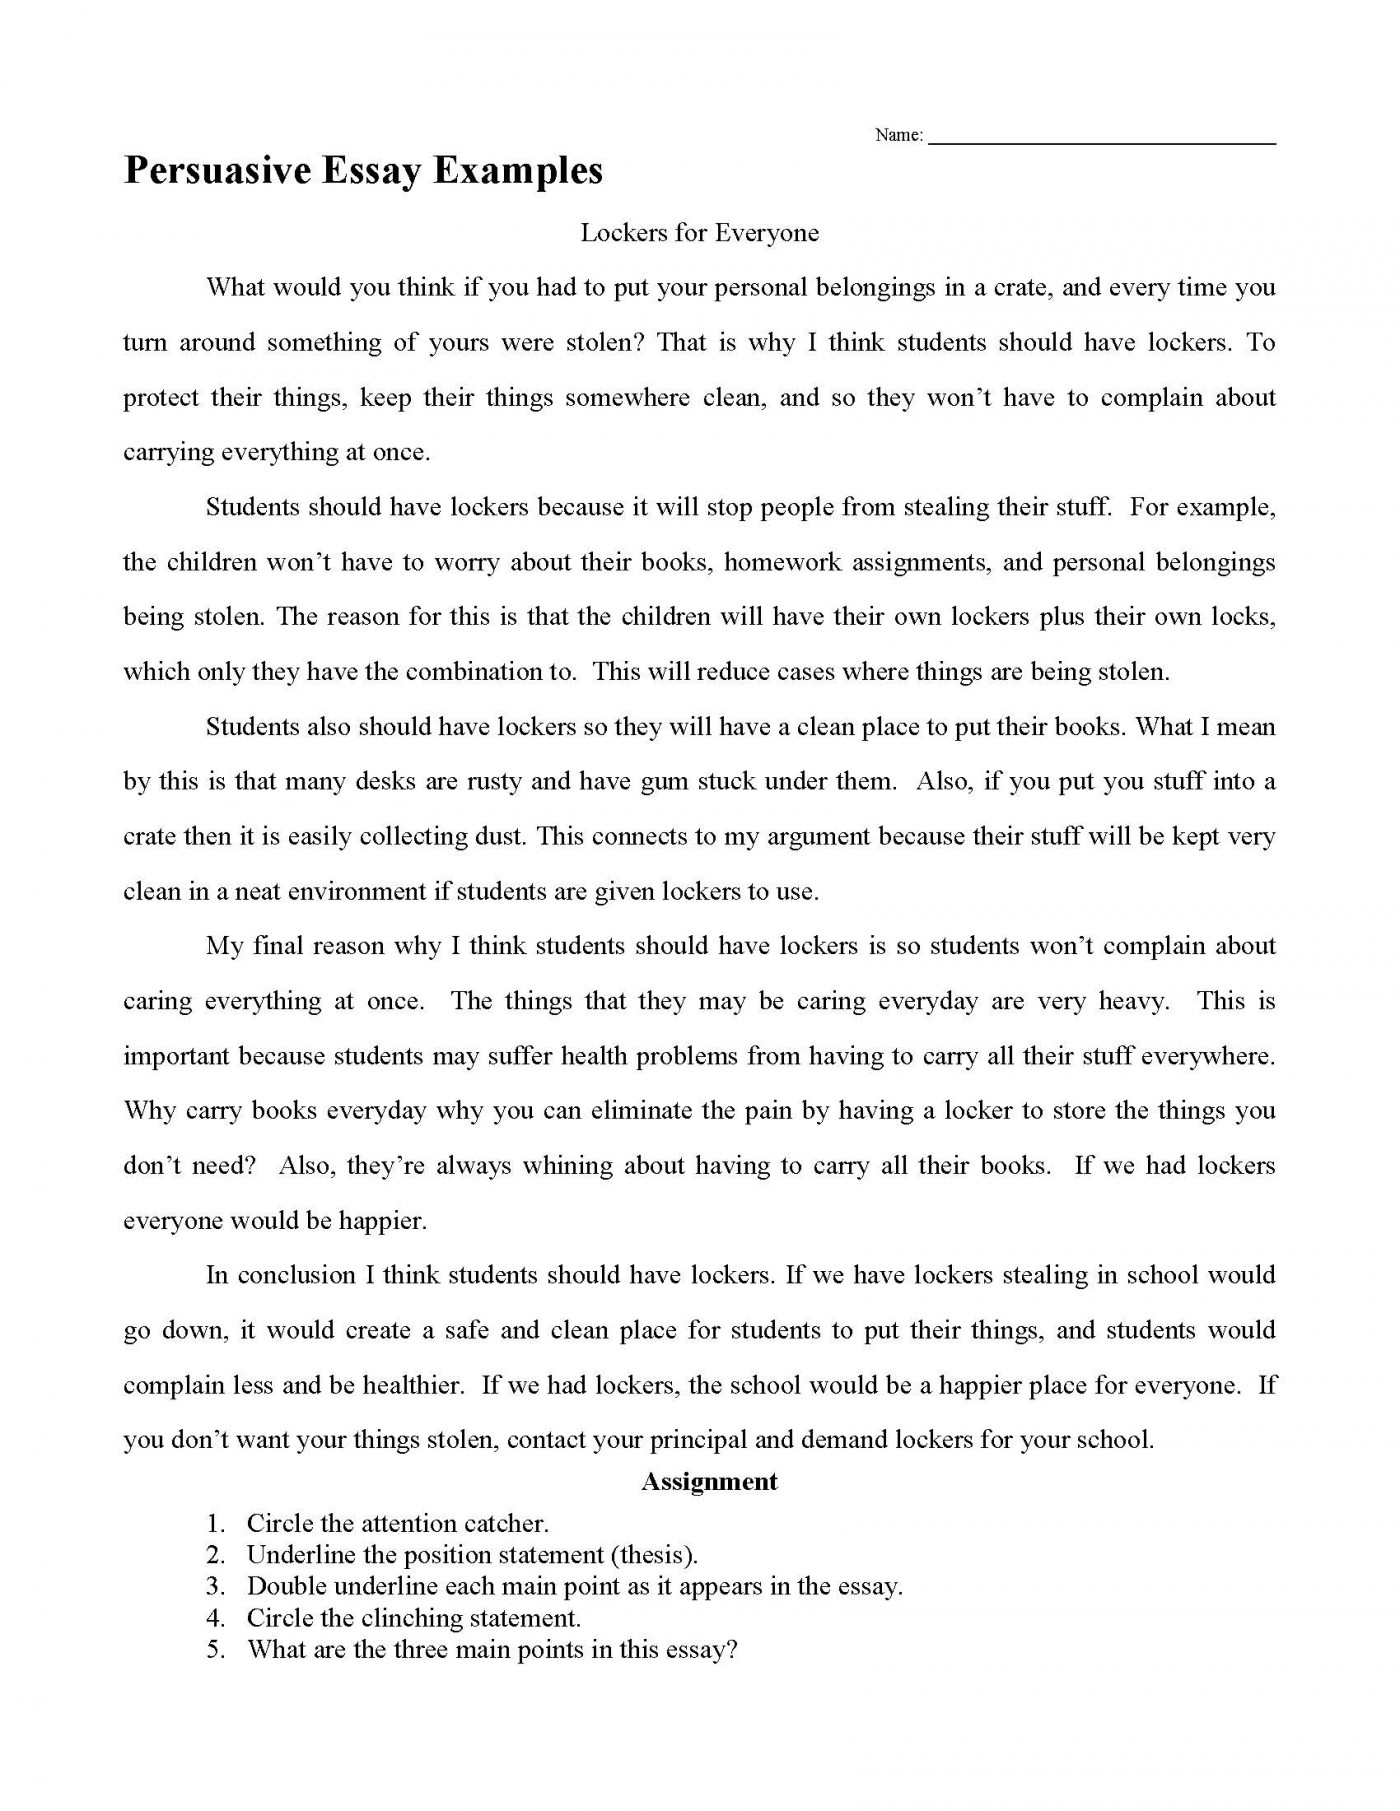 001 Essay Example Persuasive Examples How To Write Outstanding A For Middle Schoolers Ap Lang In Spanish 1400